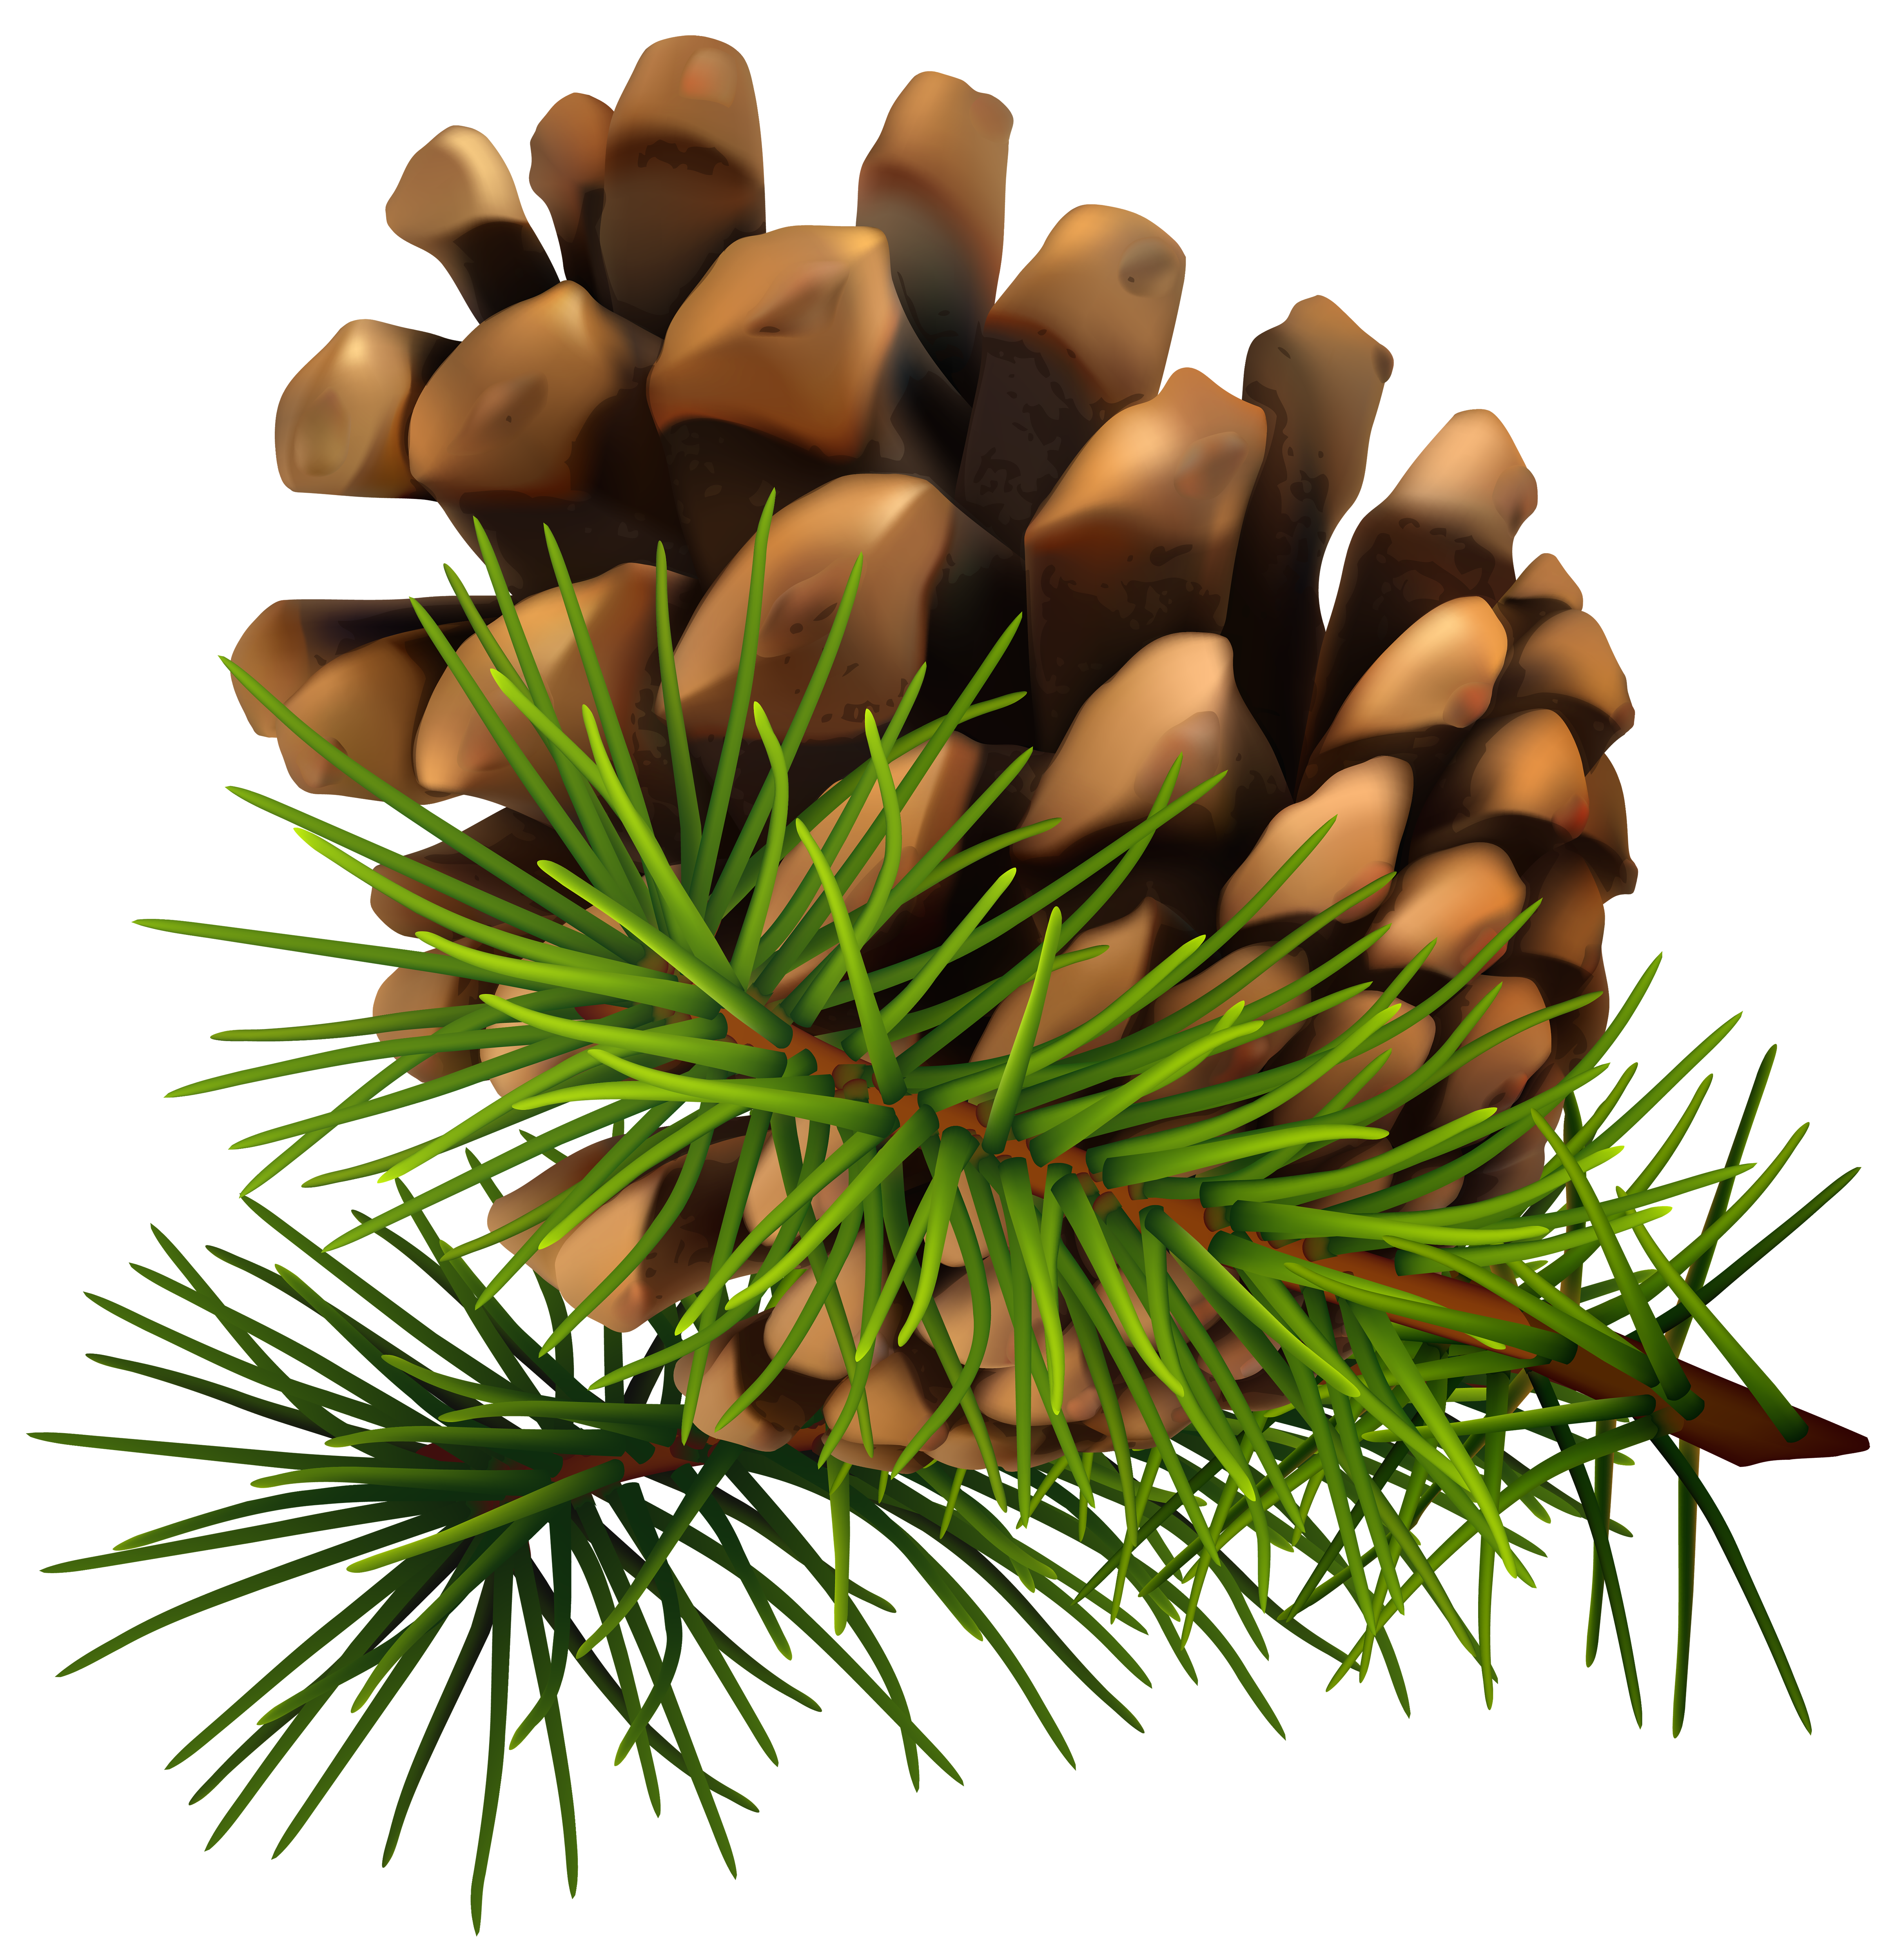 Twig drawing longleaf pine. Cone png clip art